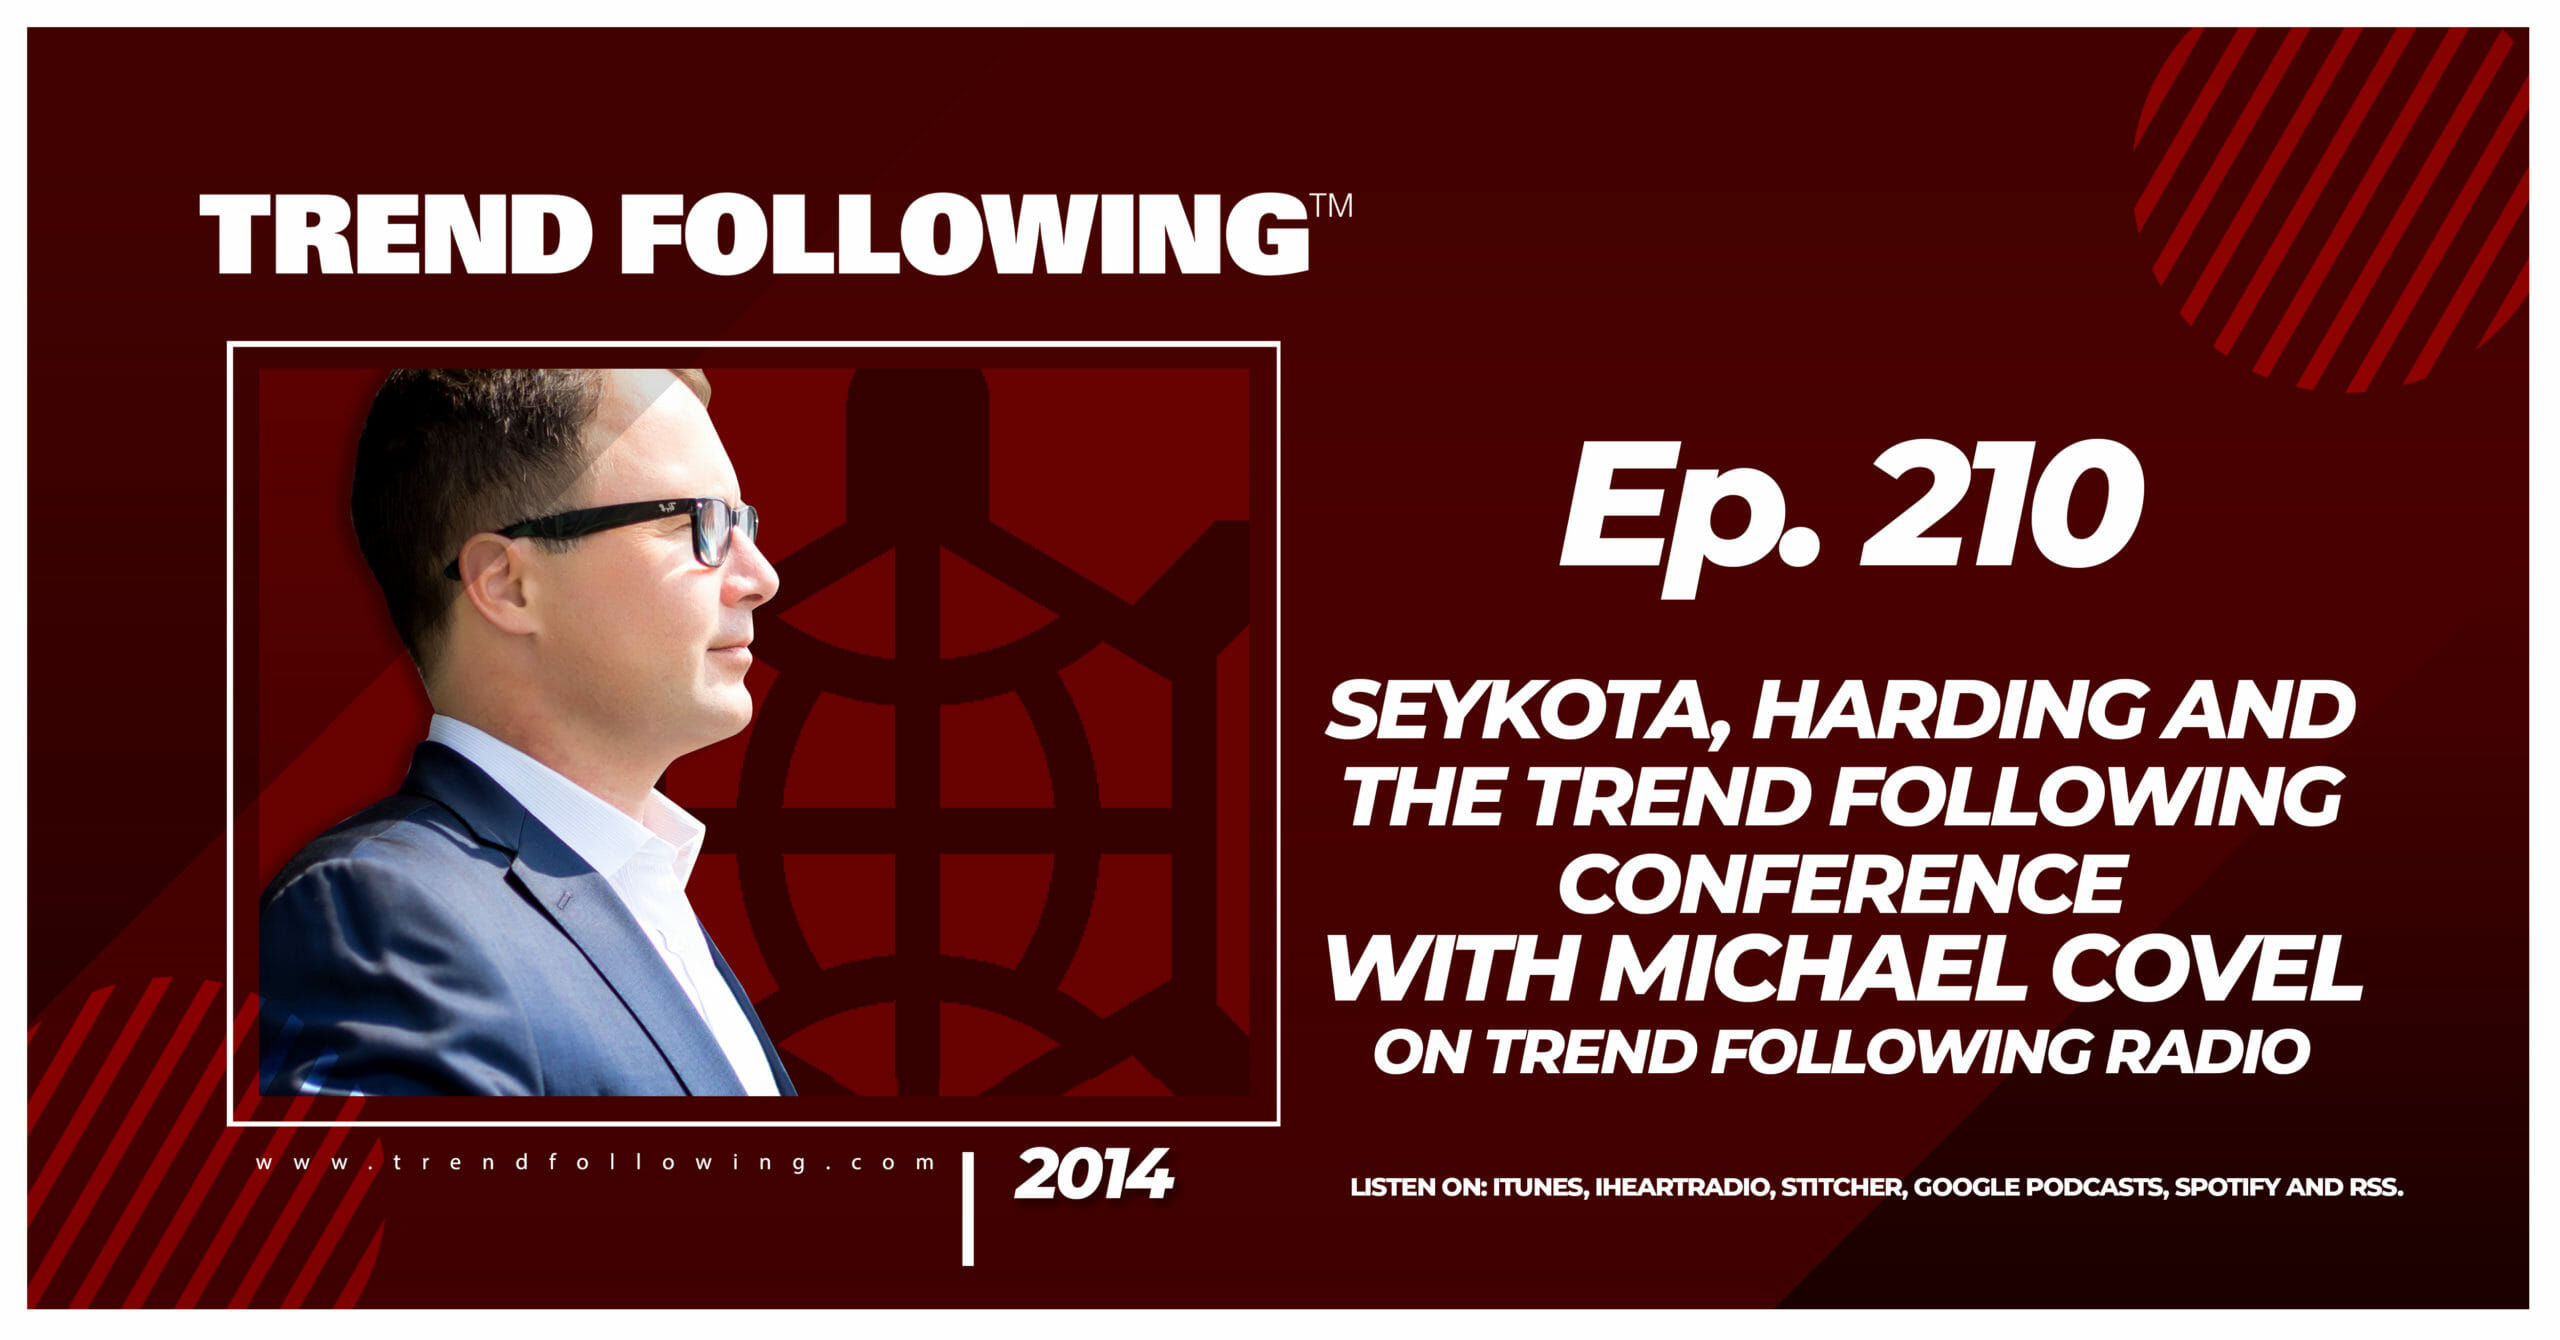 Seykota, Harding and the Trend Following Conference with Michael Covel on Trend Following Radio